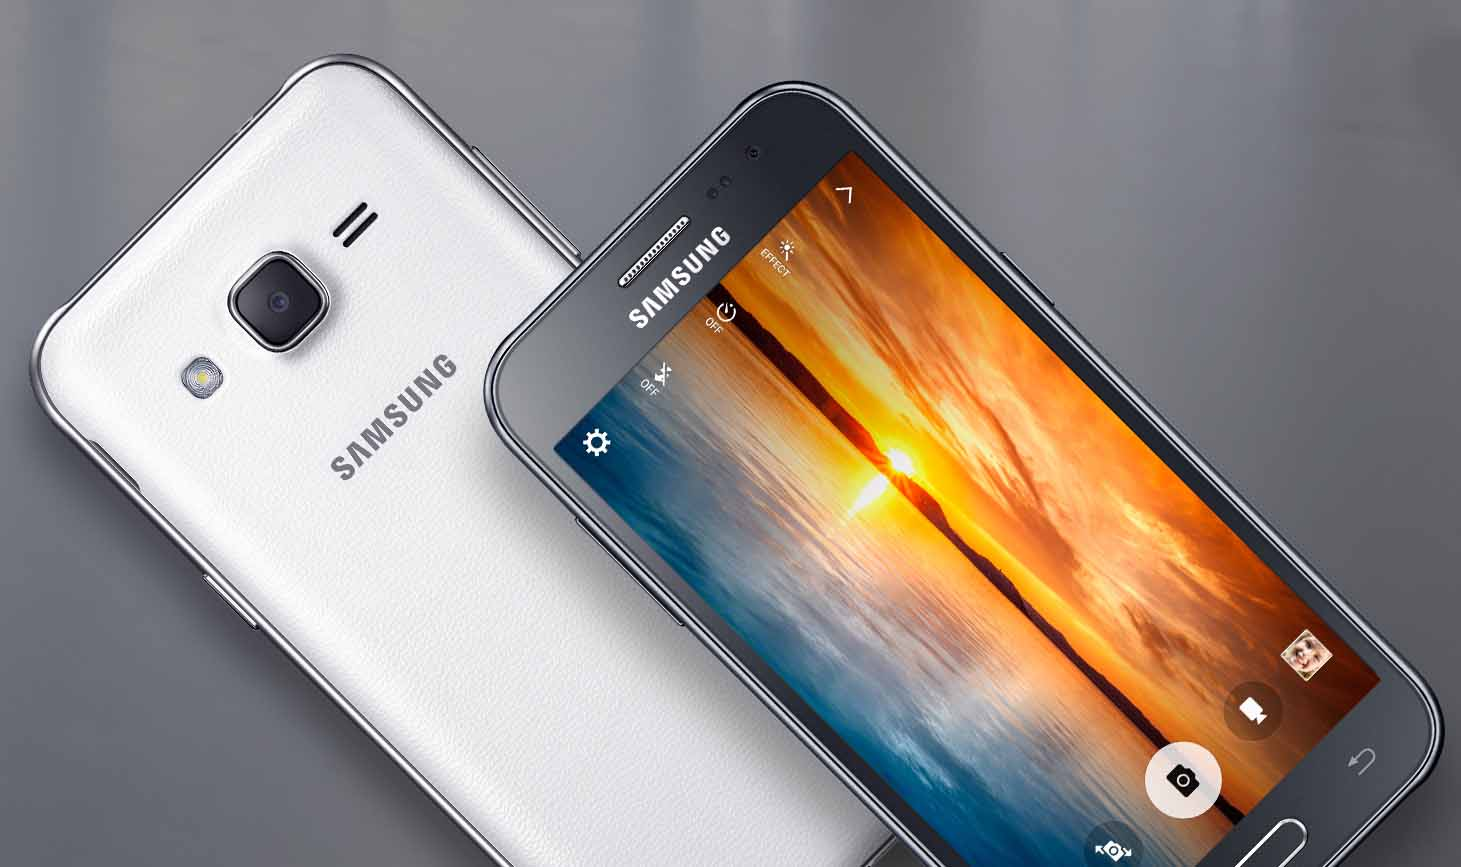 Samsung Galaxy J7 Prime And Samsung Galaxy J2 DTV Launched